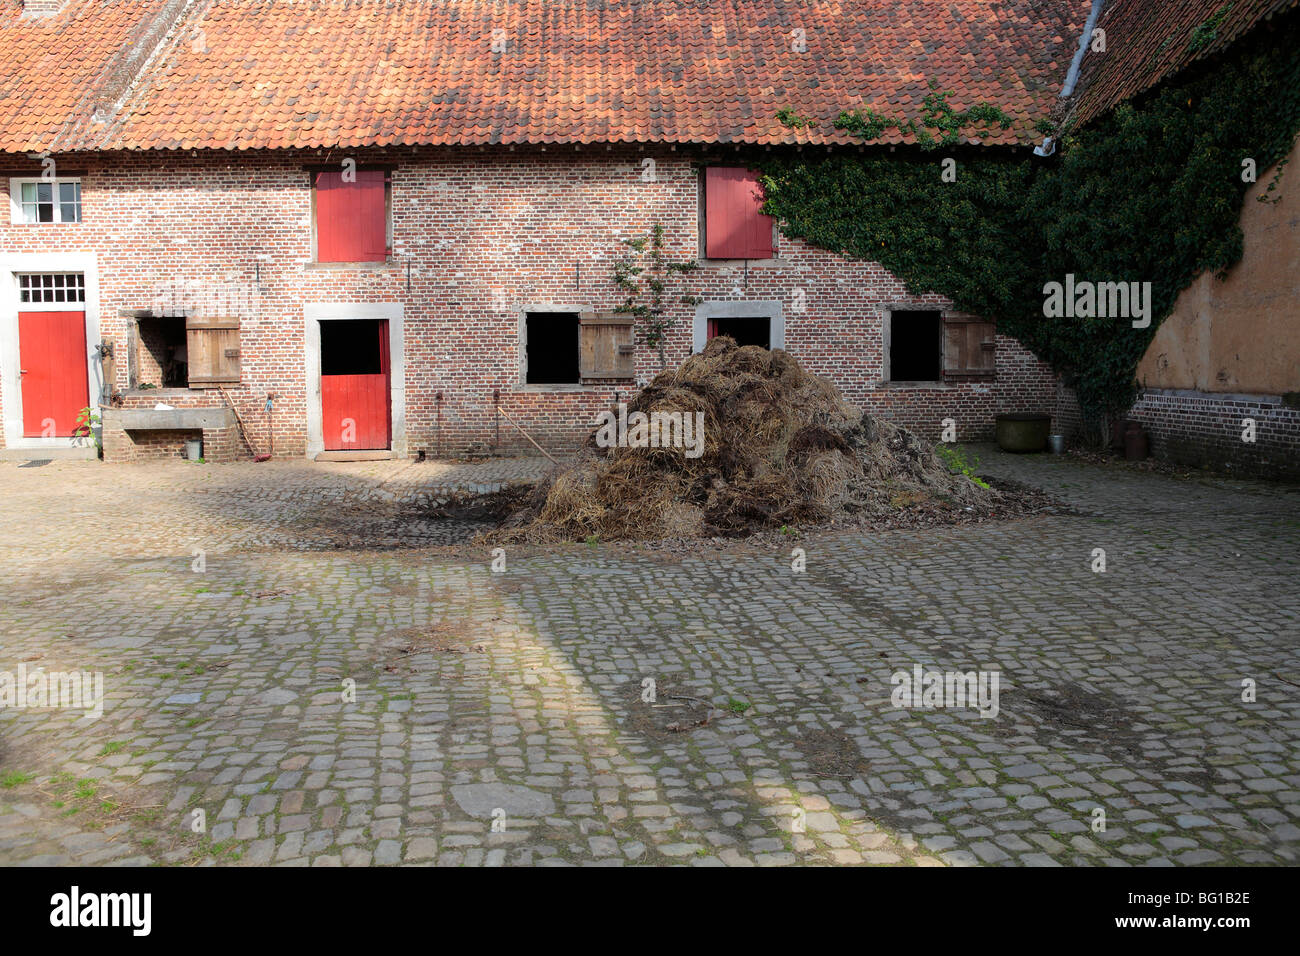 manure pile at farm Stock Photo